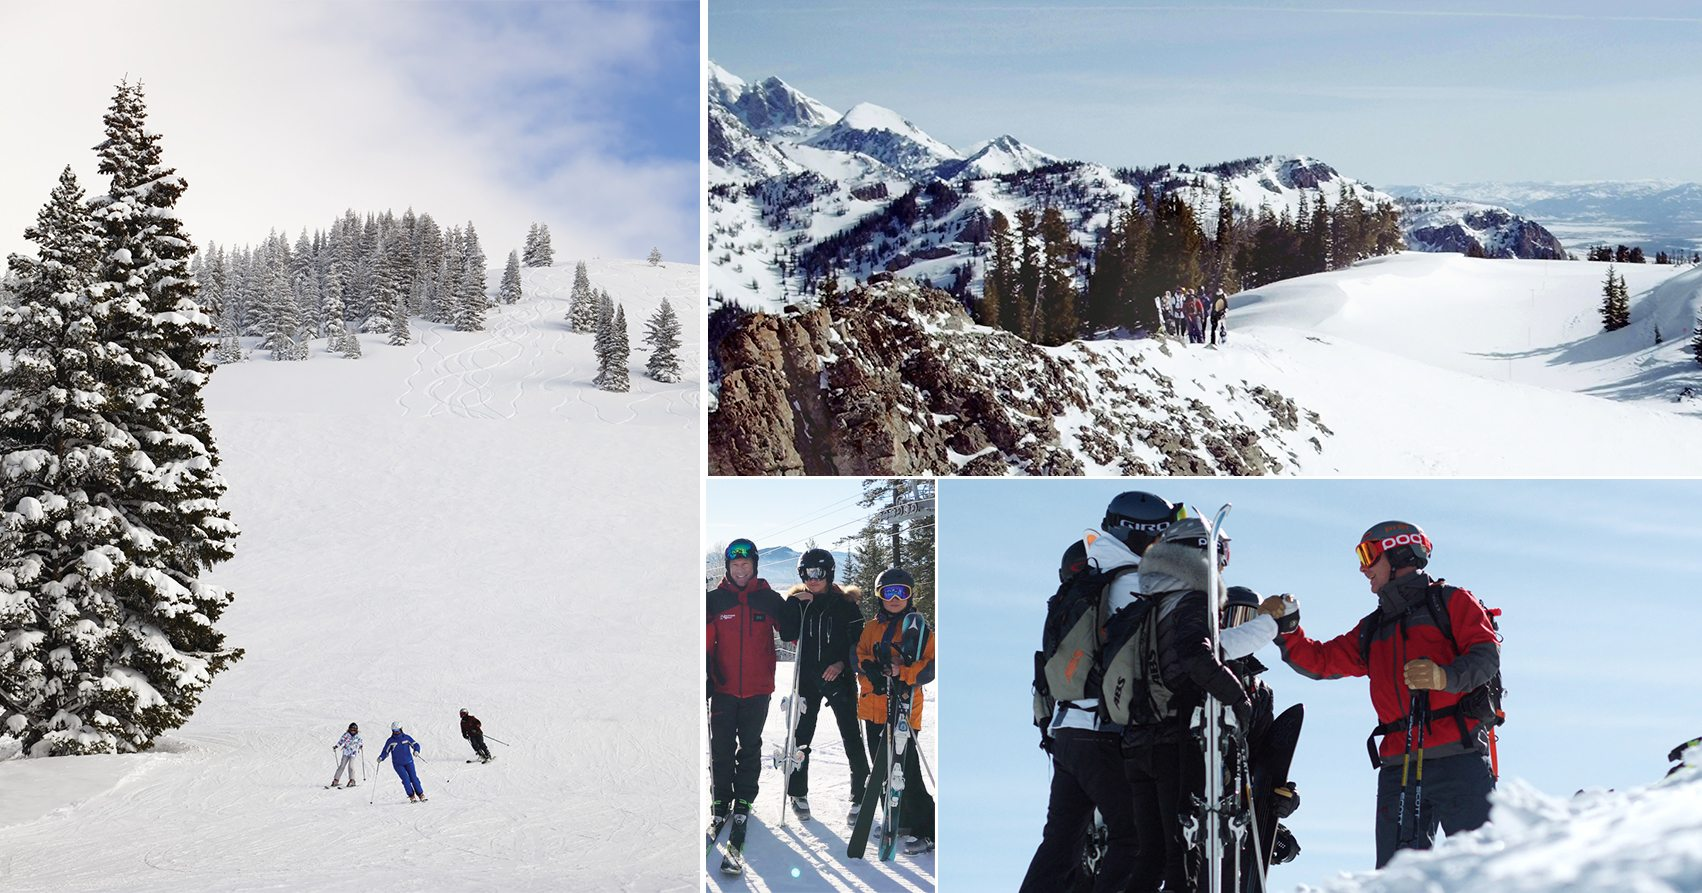 Skiing in Vail and Jackson Hole